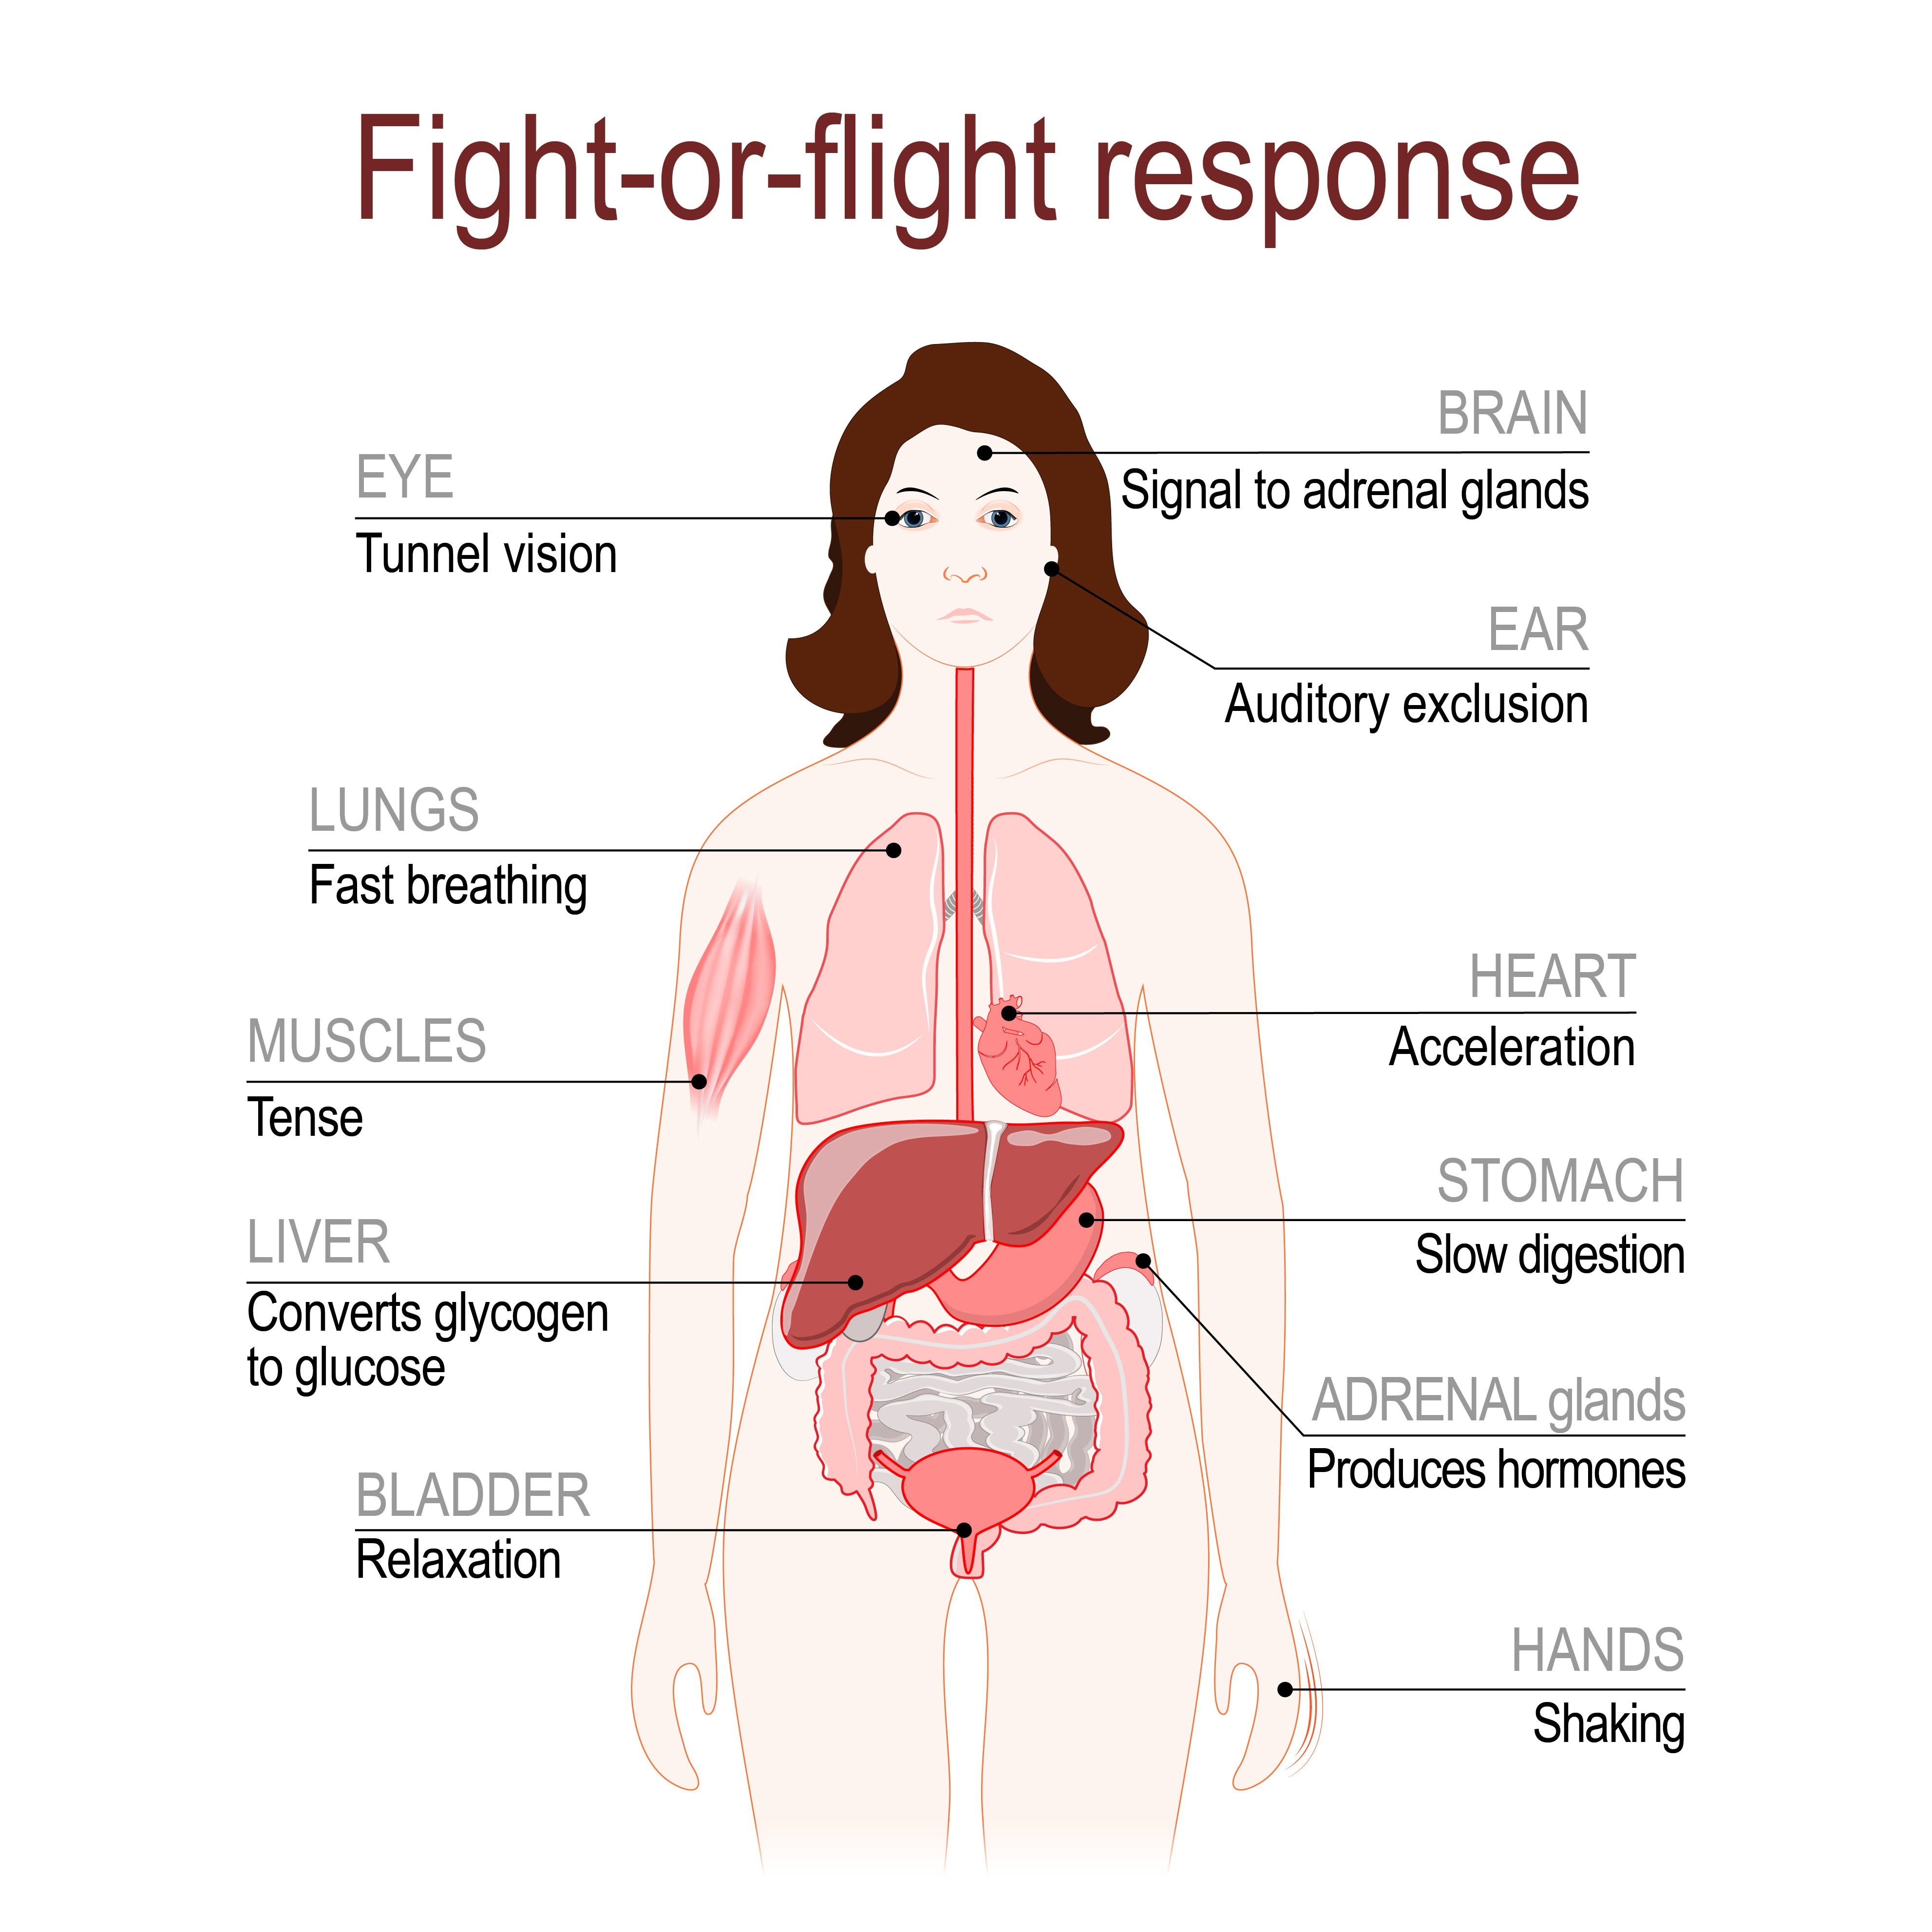 Public Speaking And The Fight Or Flight Response